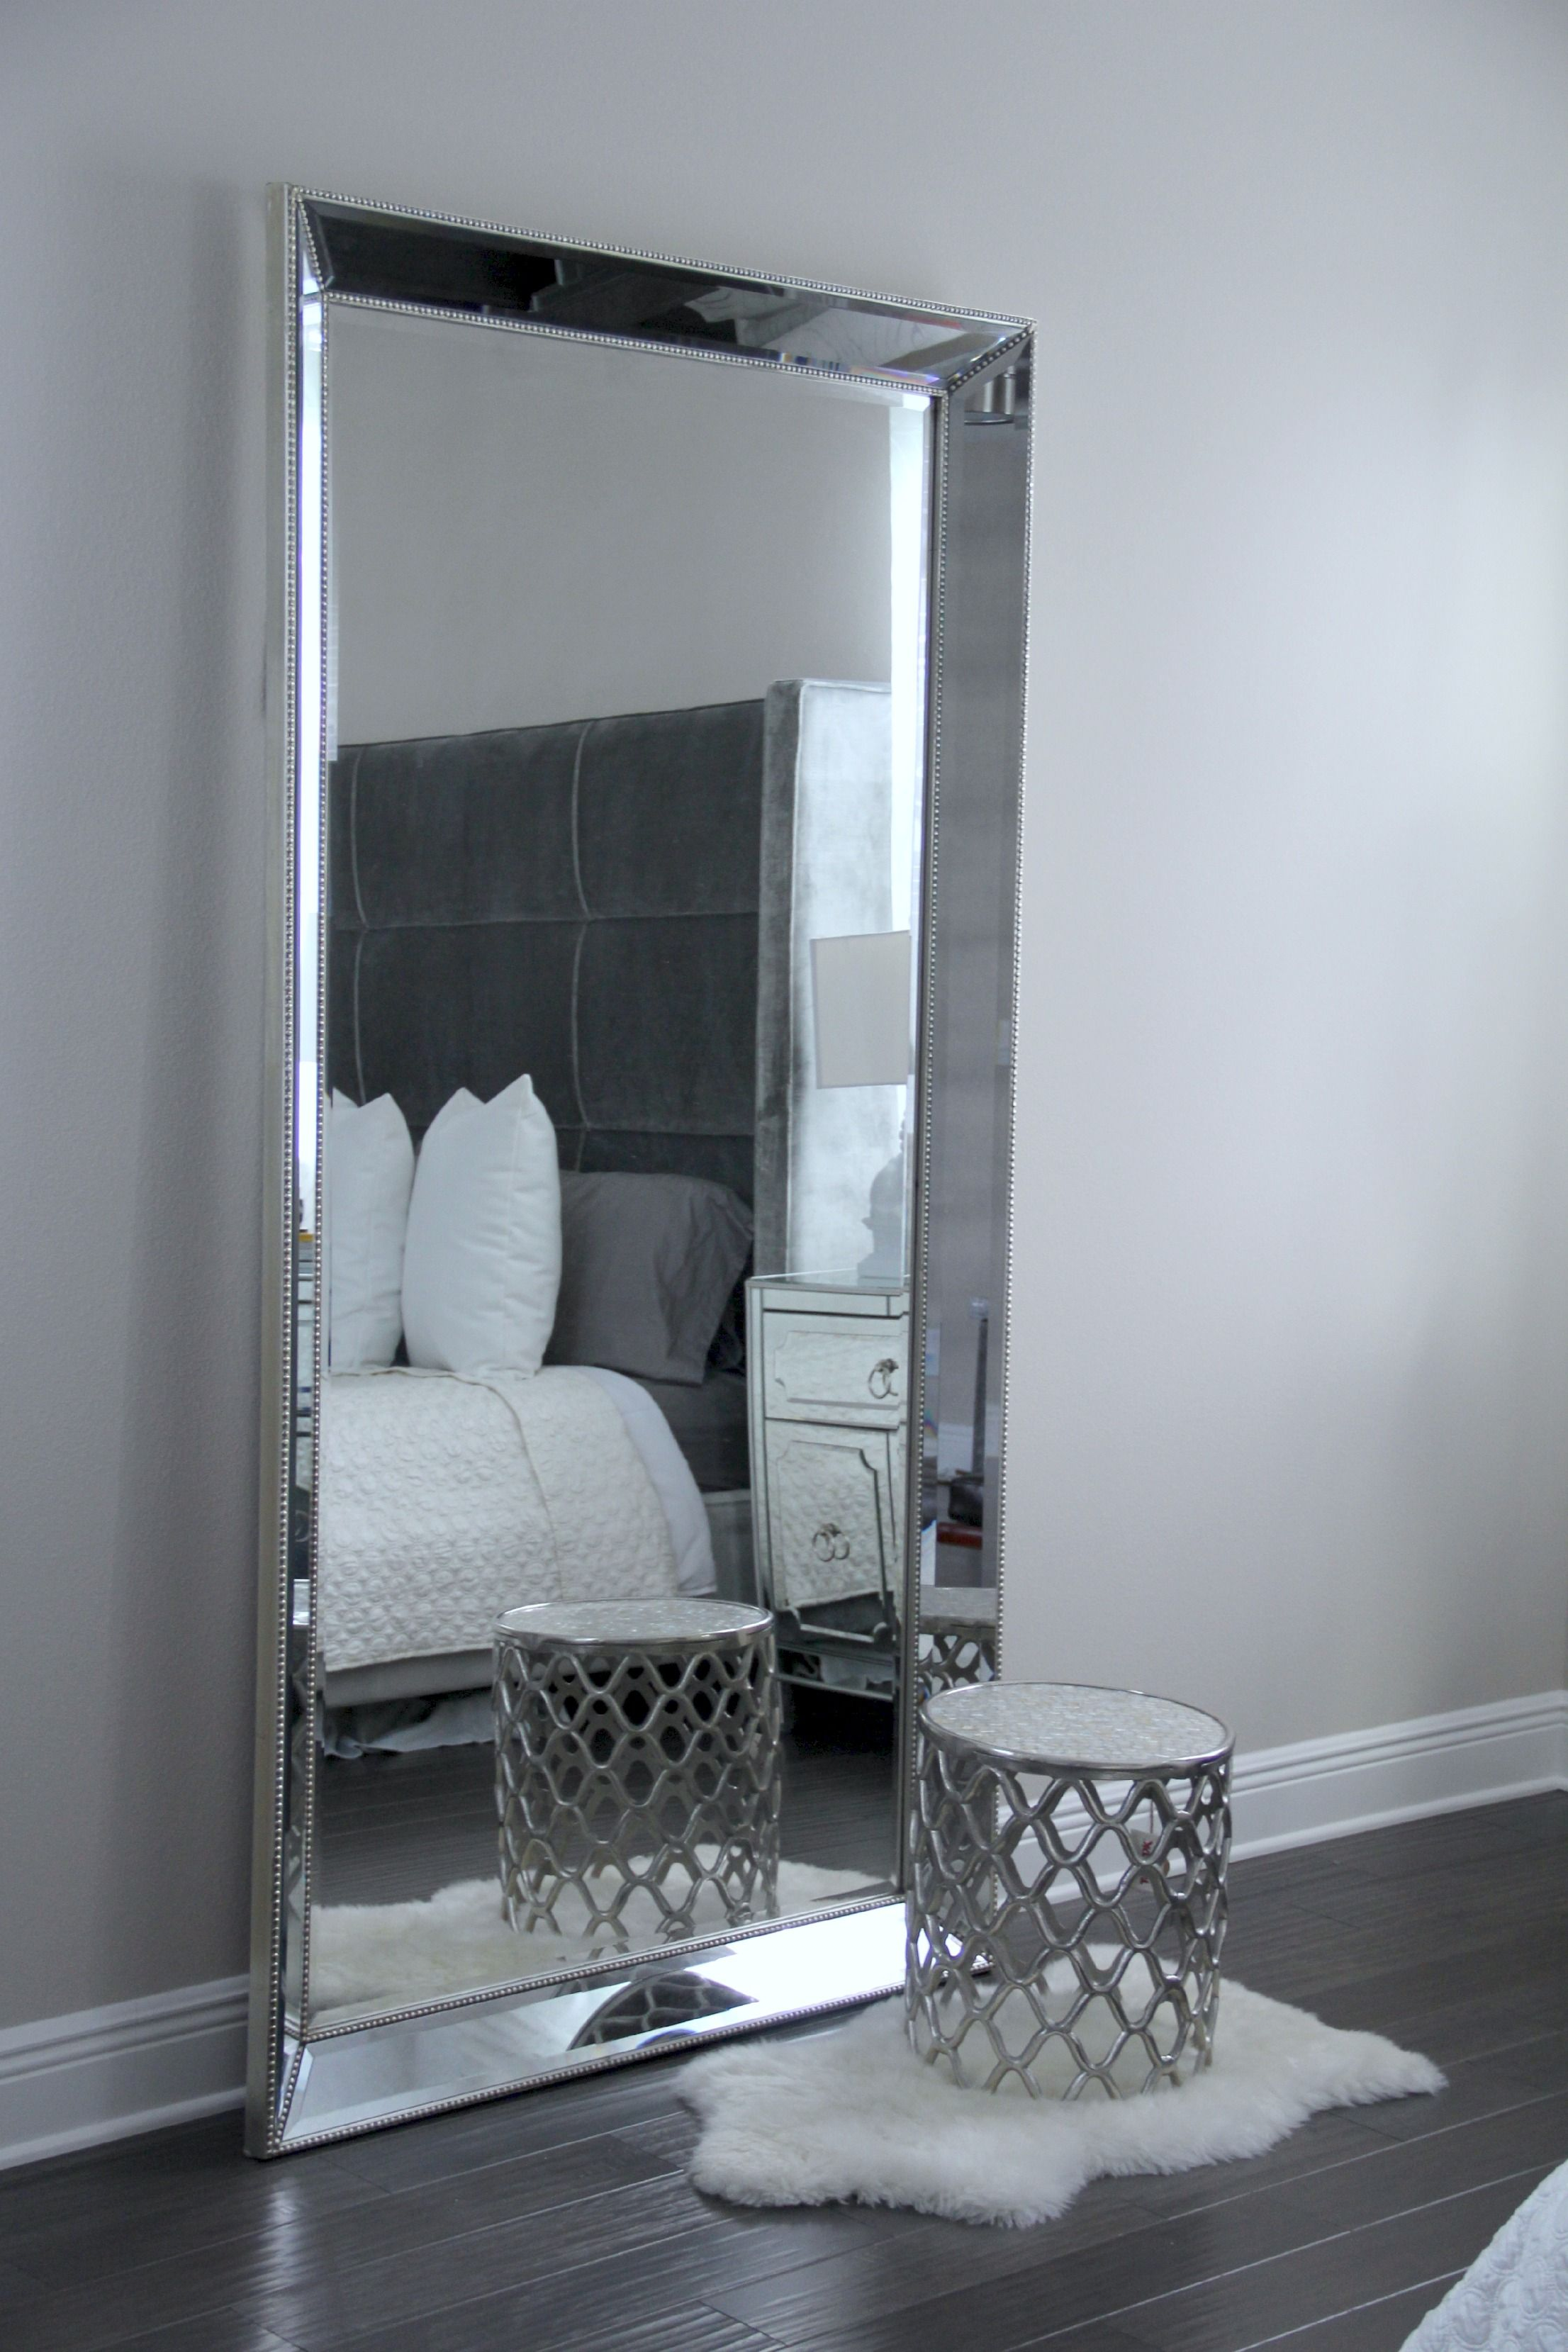 mirrored bedroom furniture decorating ideas  Mirrored bedroom